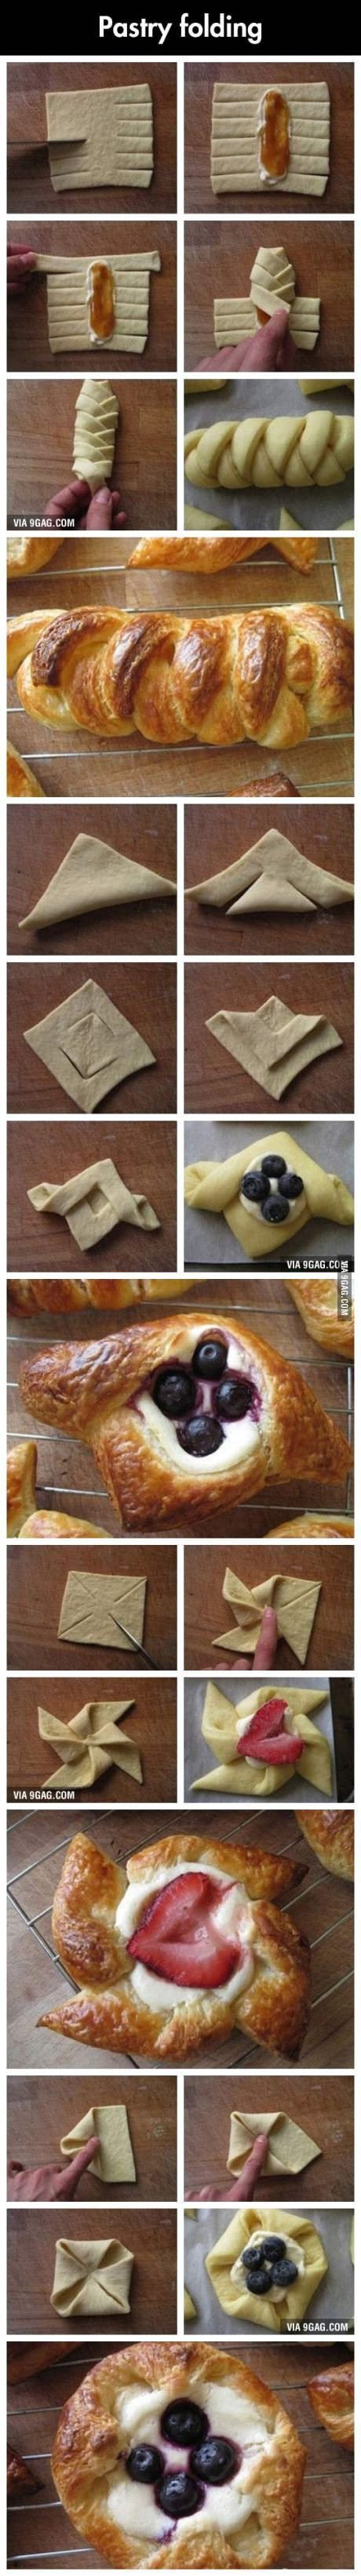 That first one reminds me of the awesome breakfast my friends mom always made when we had sleepovers.